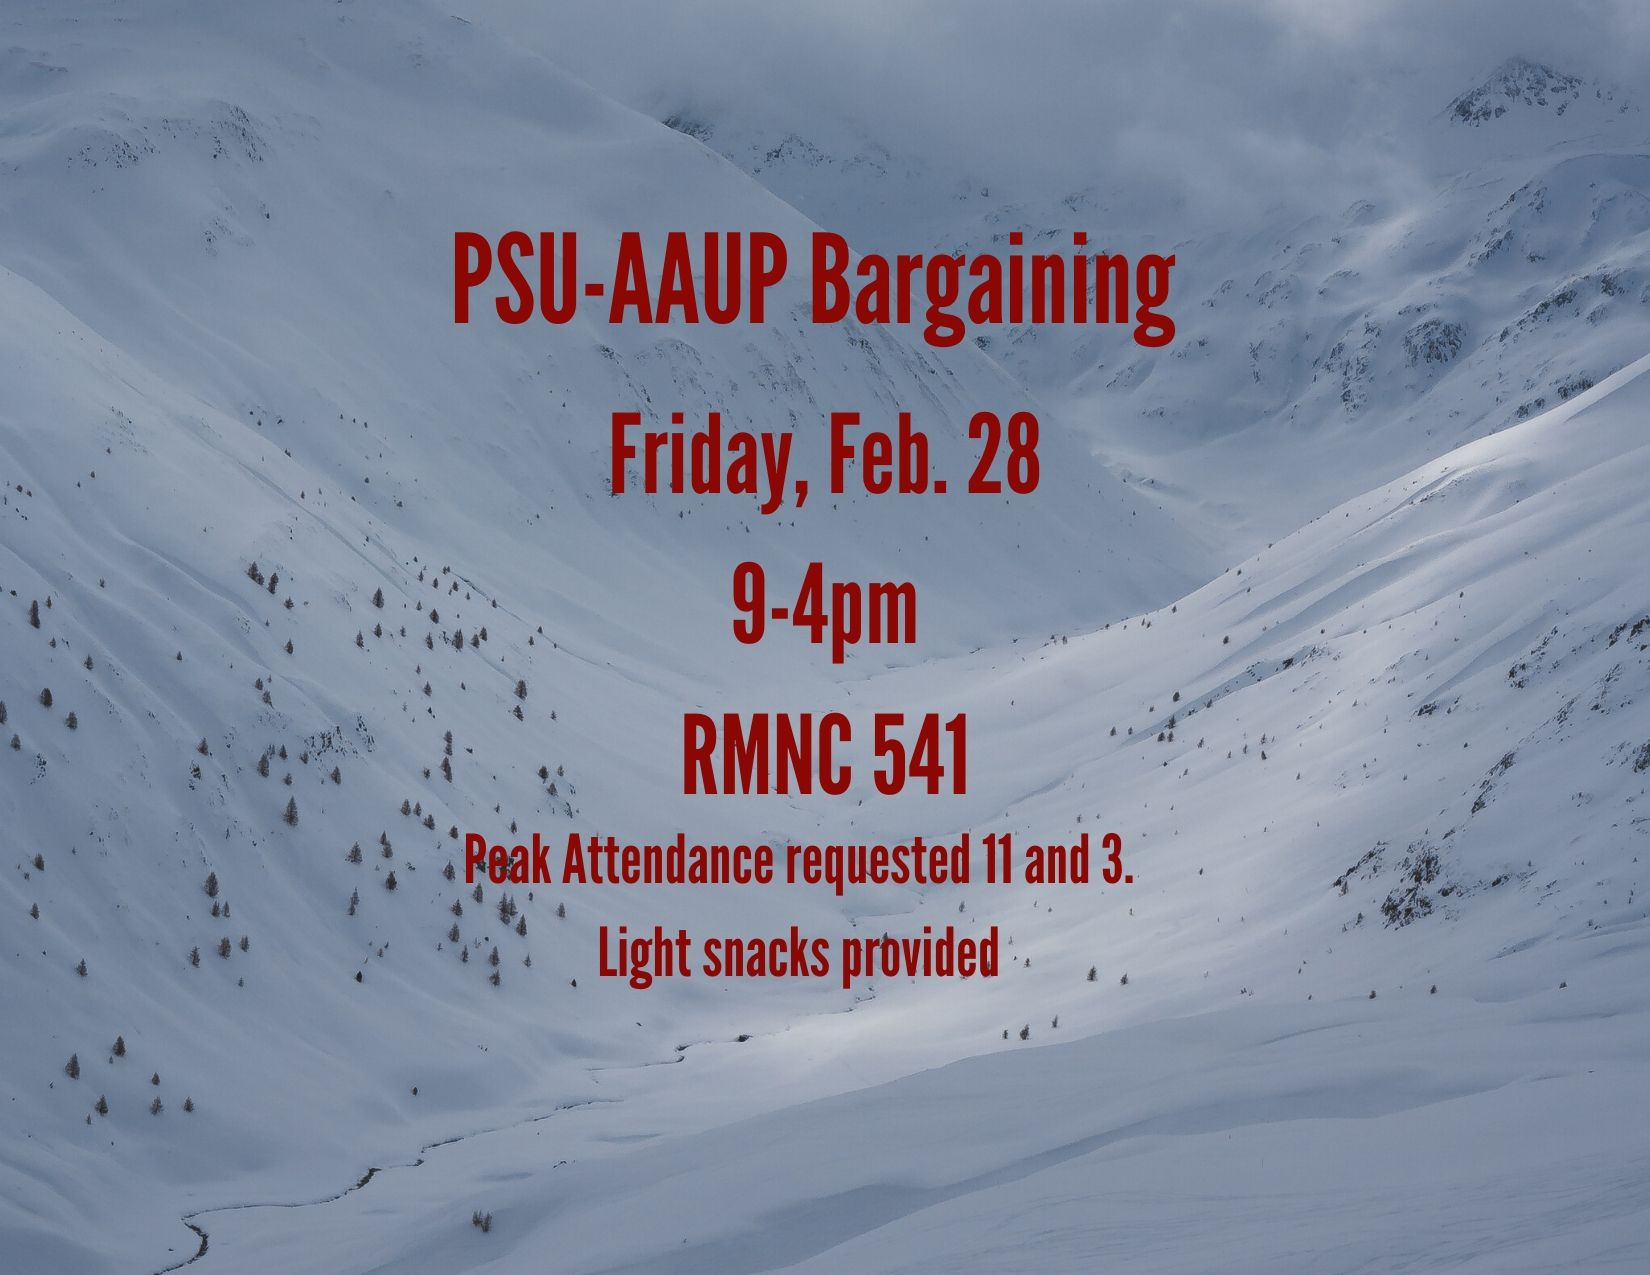 PSU-AAUP Bargaining - February 28